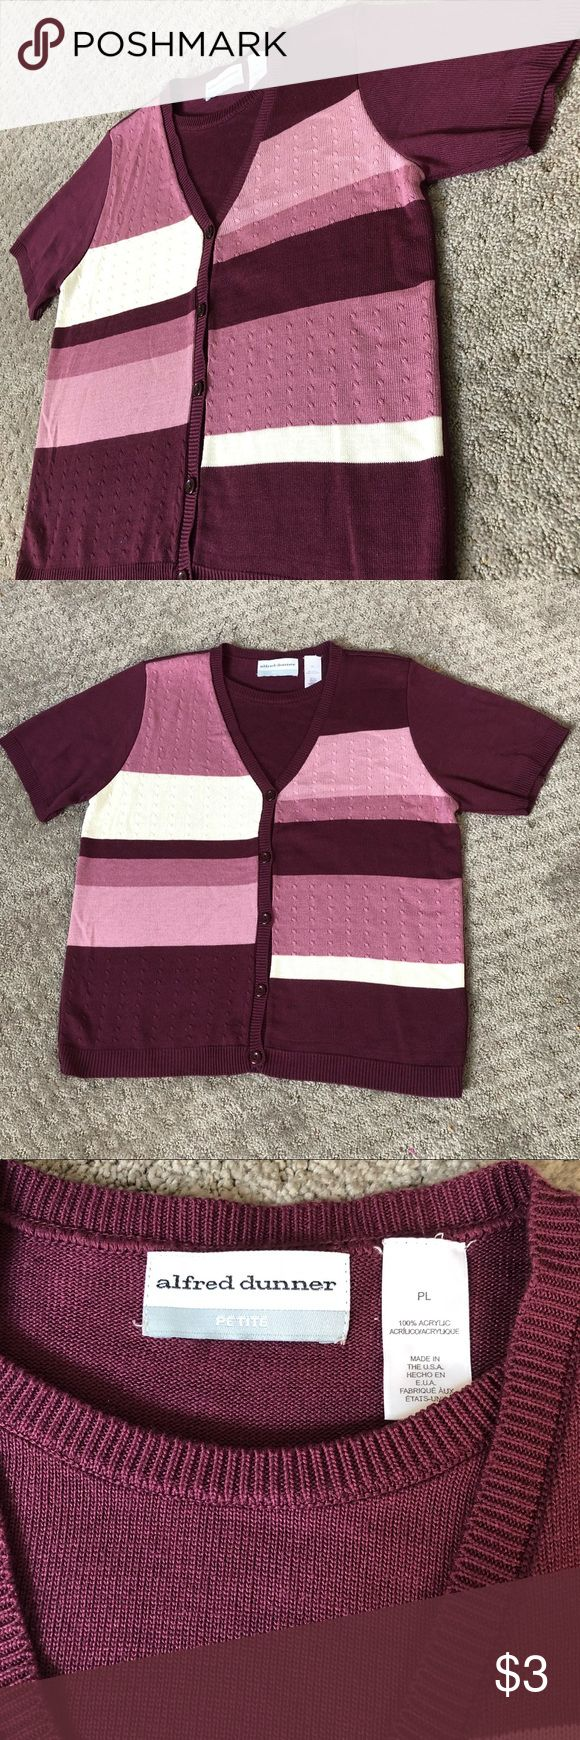 Purple Short Sleeve Top EUC Purple and white striped button down top with a faux layer beneath by Alfred Dunner. Size petite Large, and fits true to size. Wear it with light colored slacks for a business casual look, or with black skinny jeans and flats for a casual day out. Alfred Dunner Tops Blouses